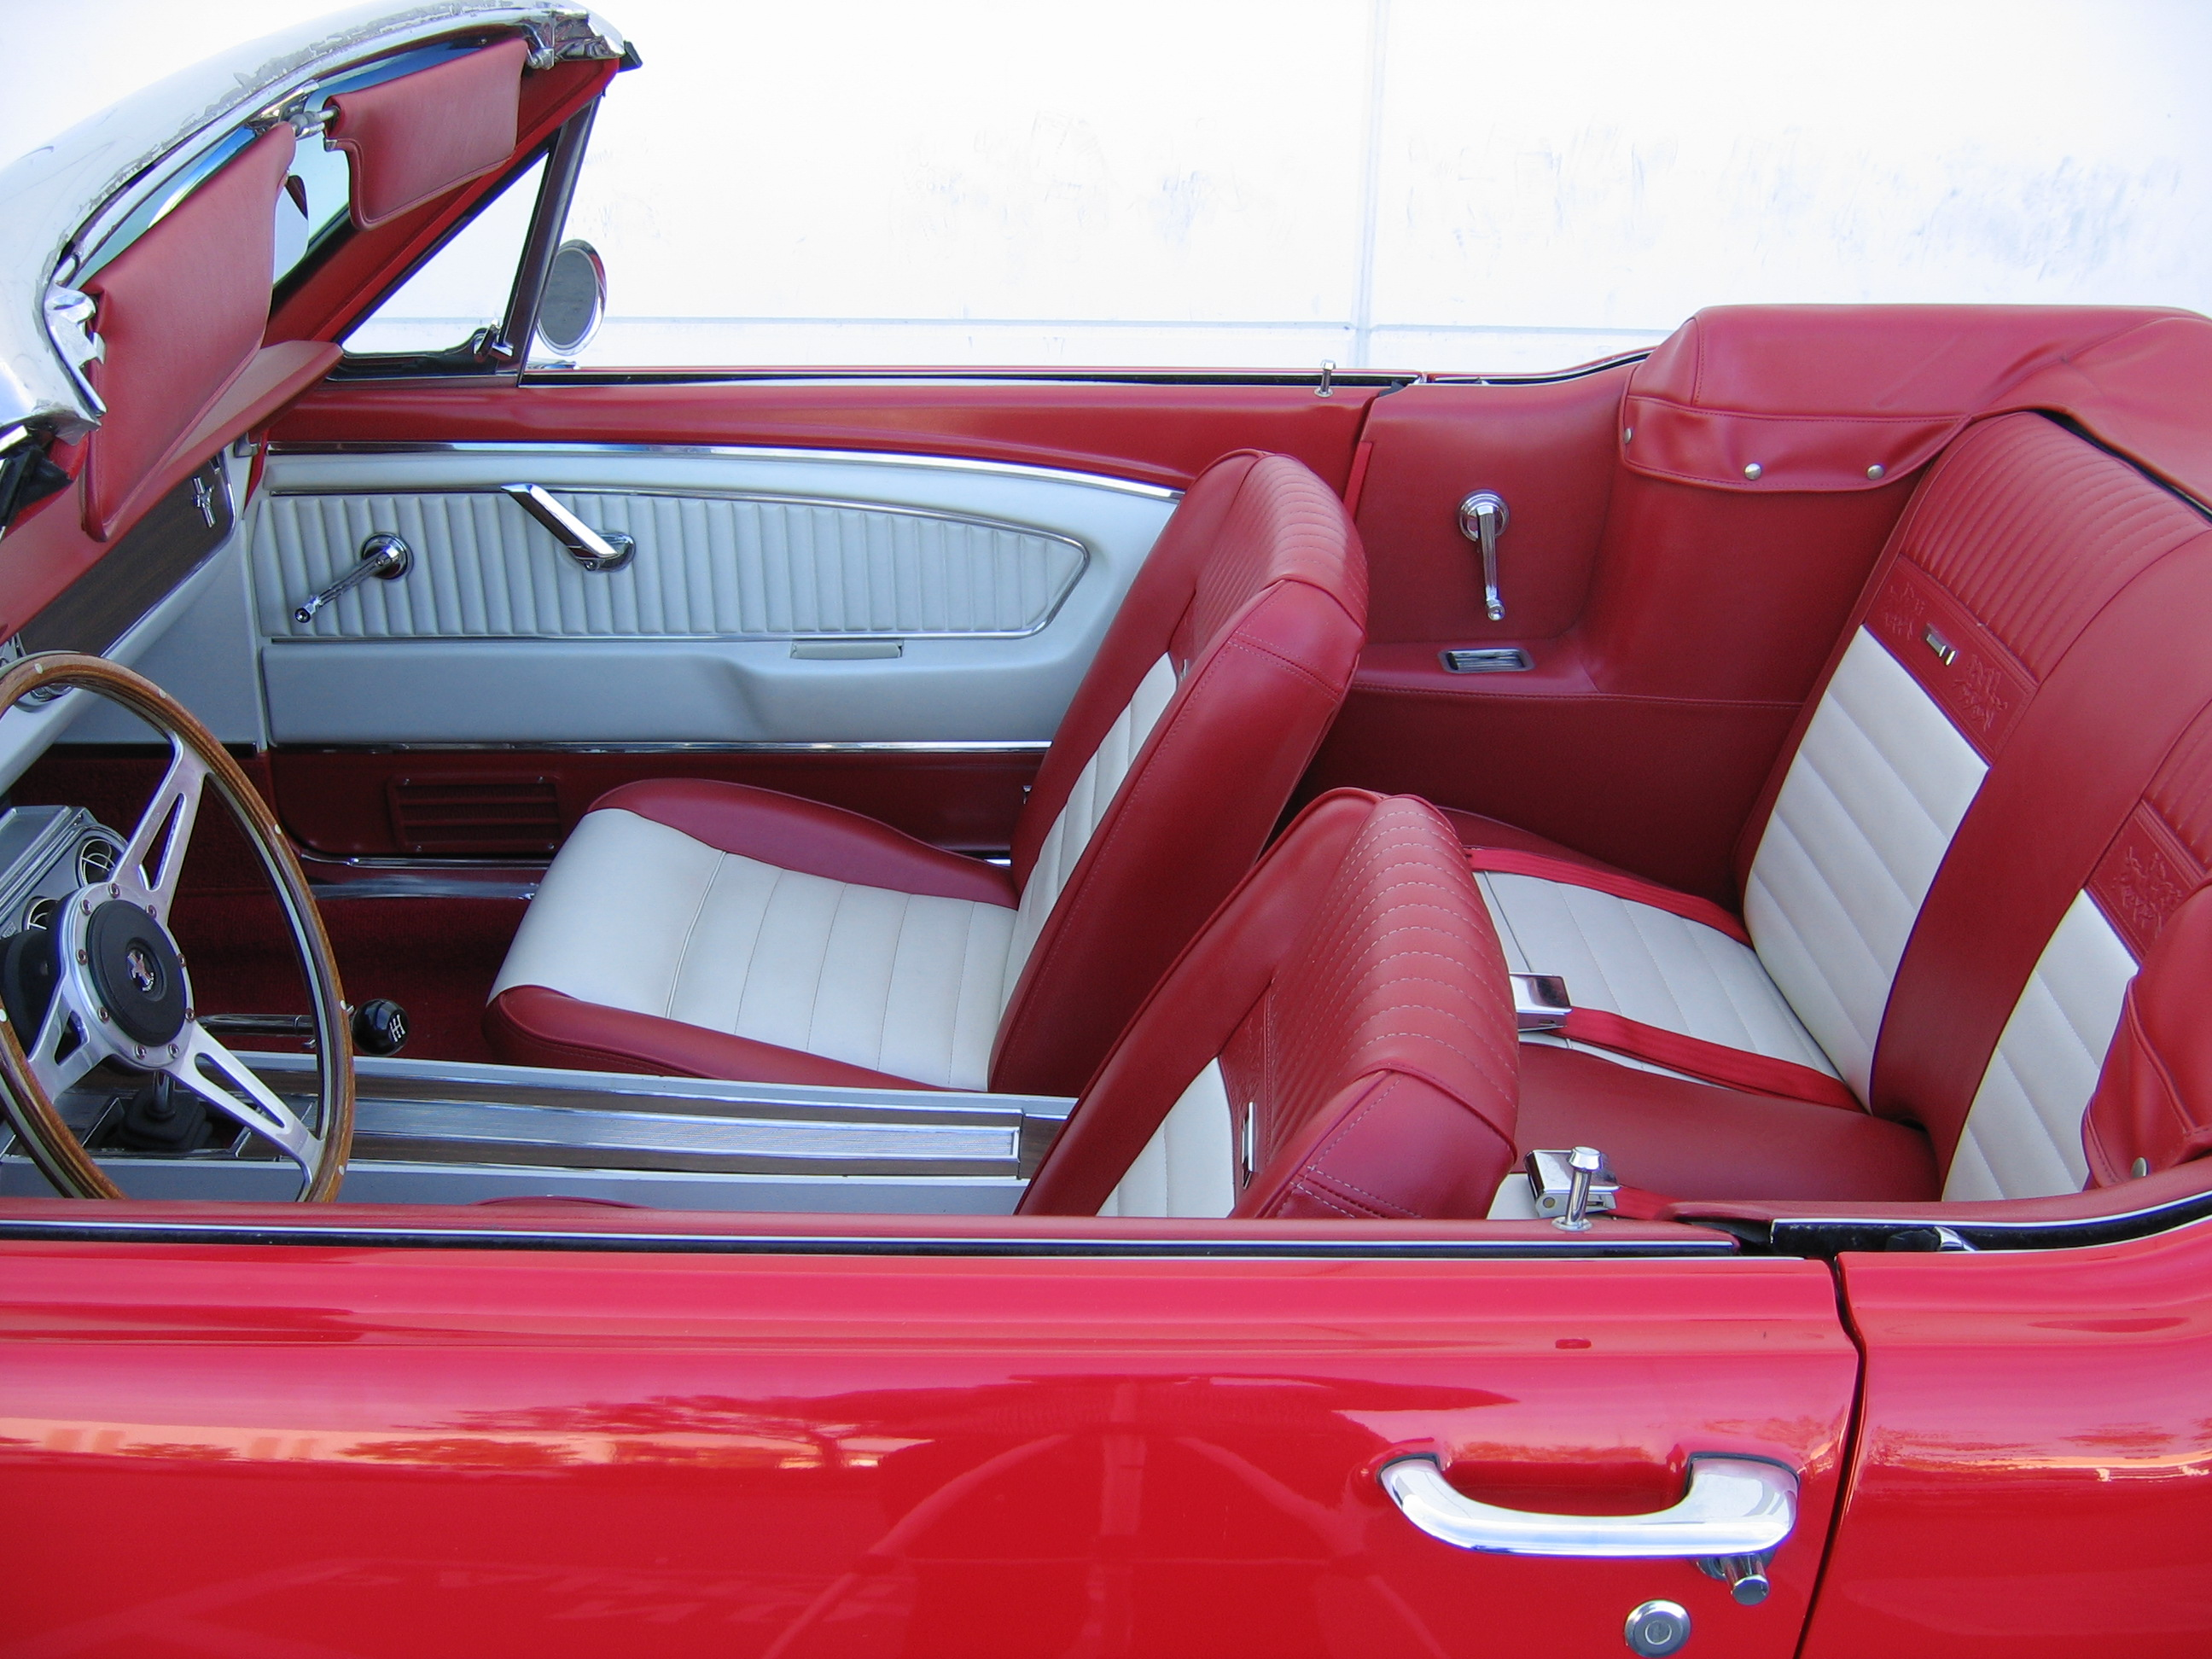 How to Incorporate a TMI Interior into a Custom Vehicle Build